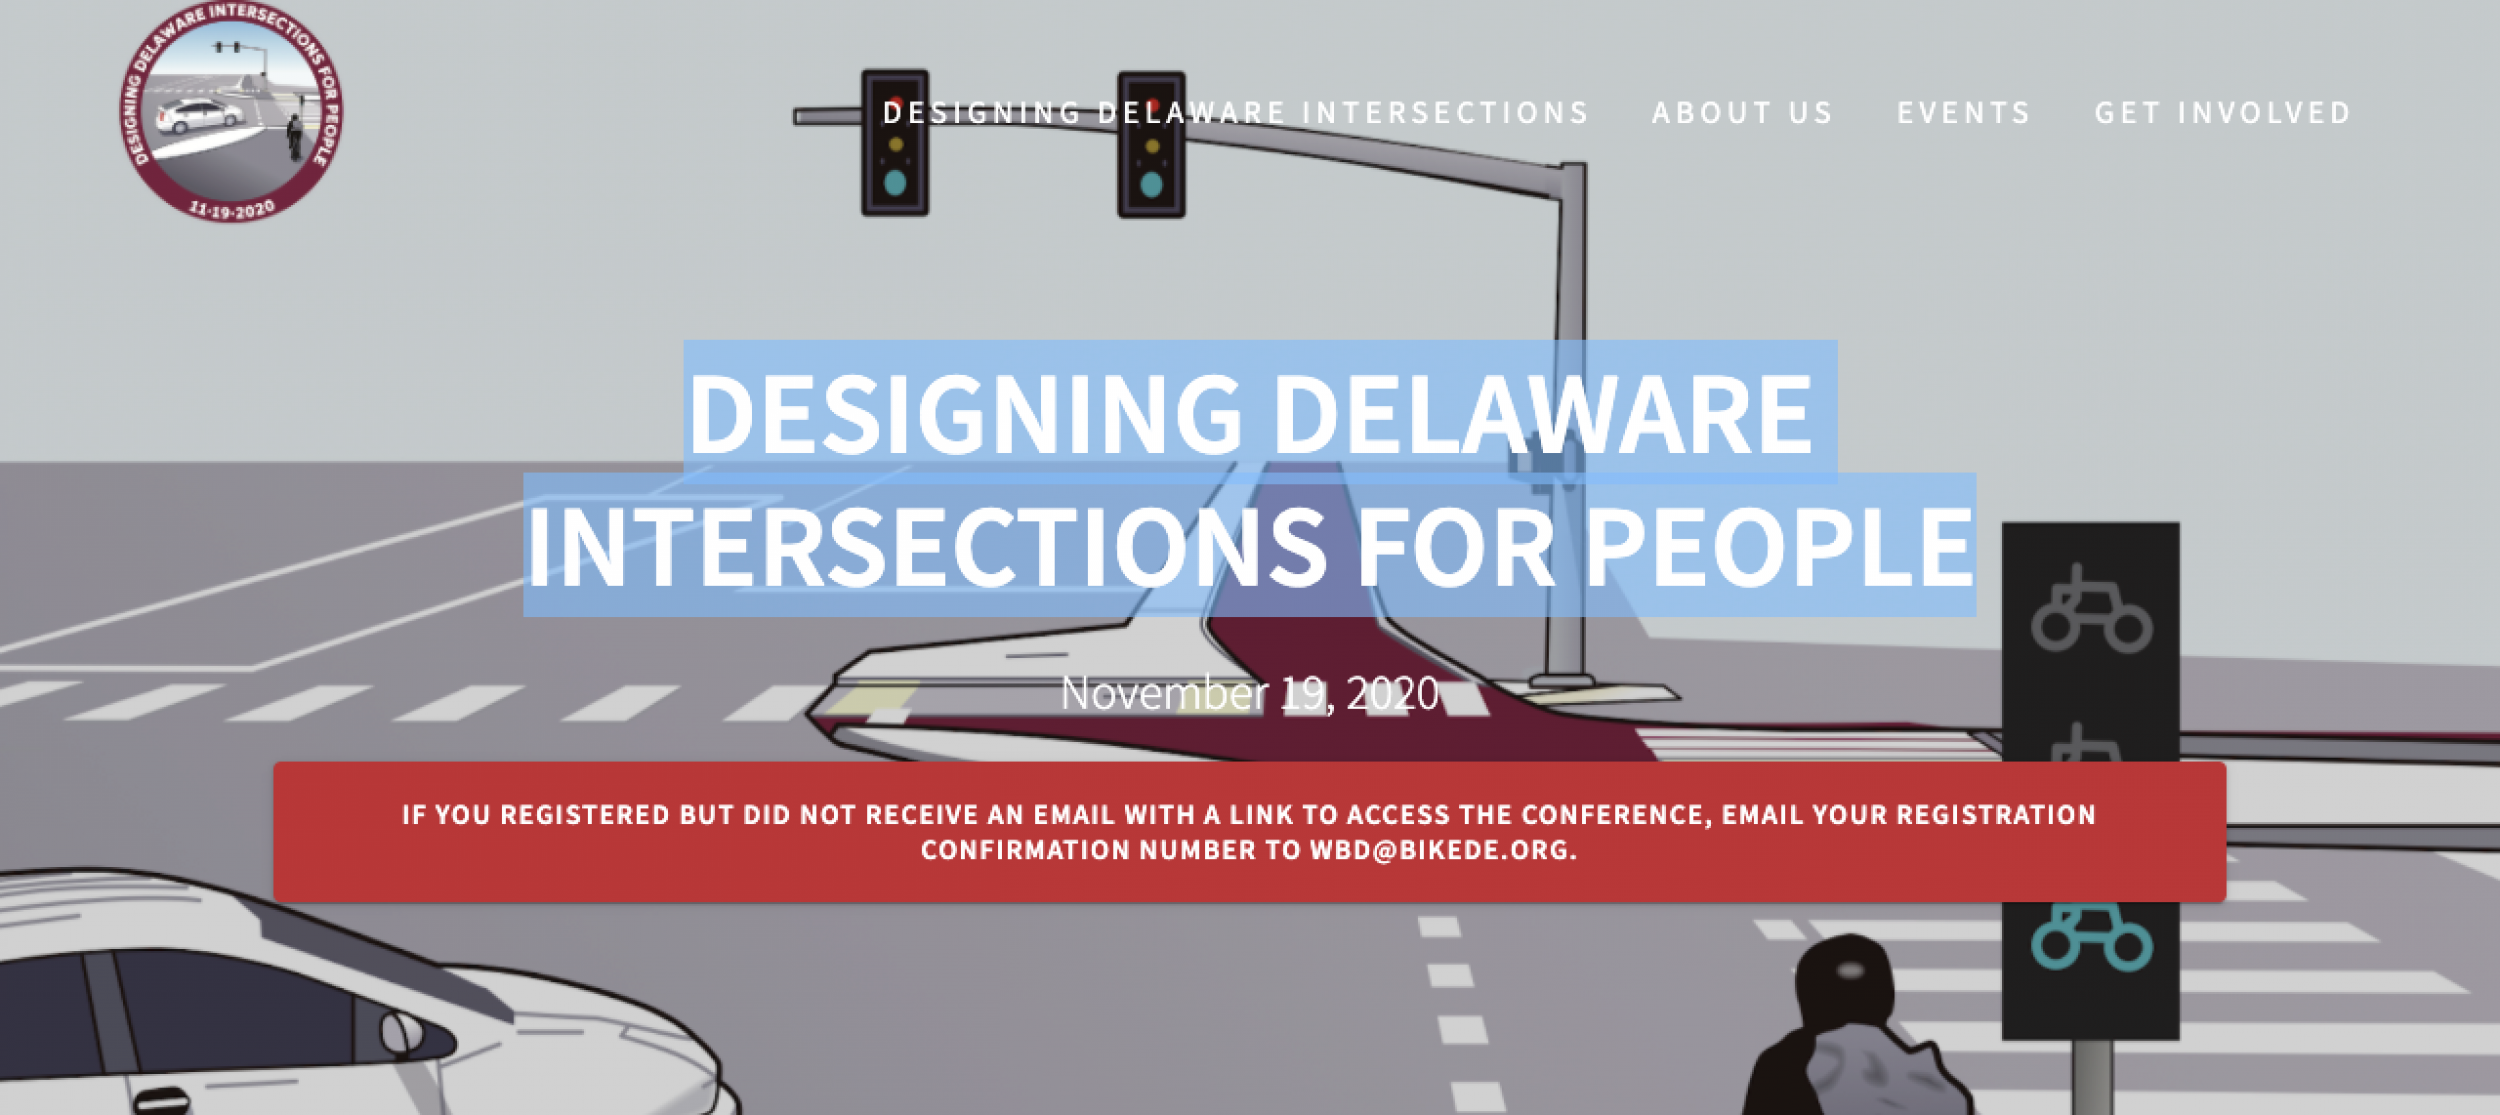 Presenting Dutch style intersections in Delaware